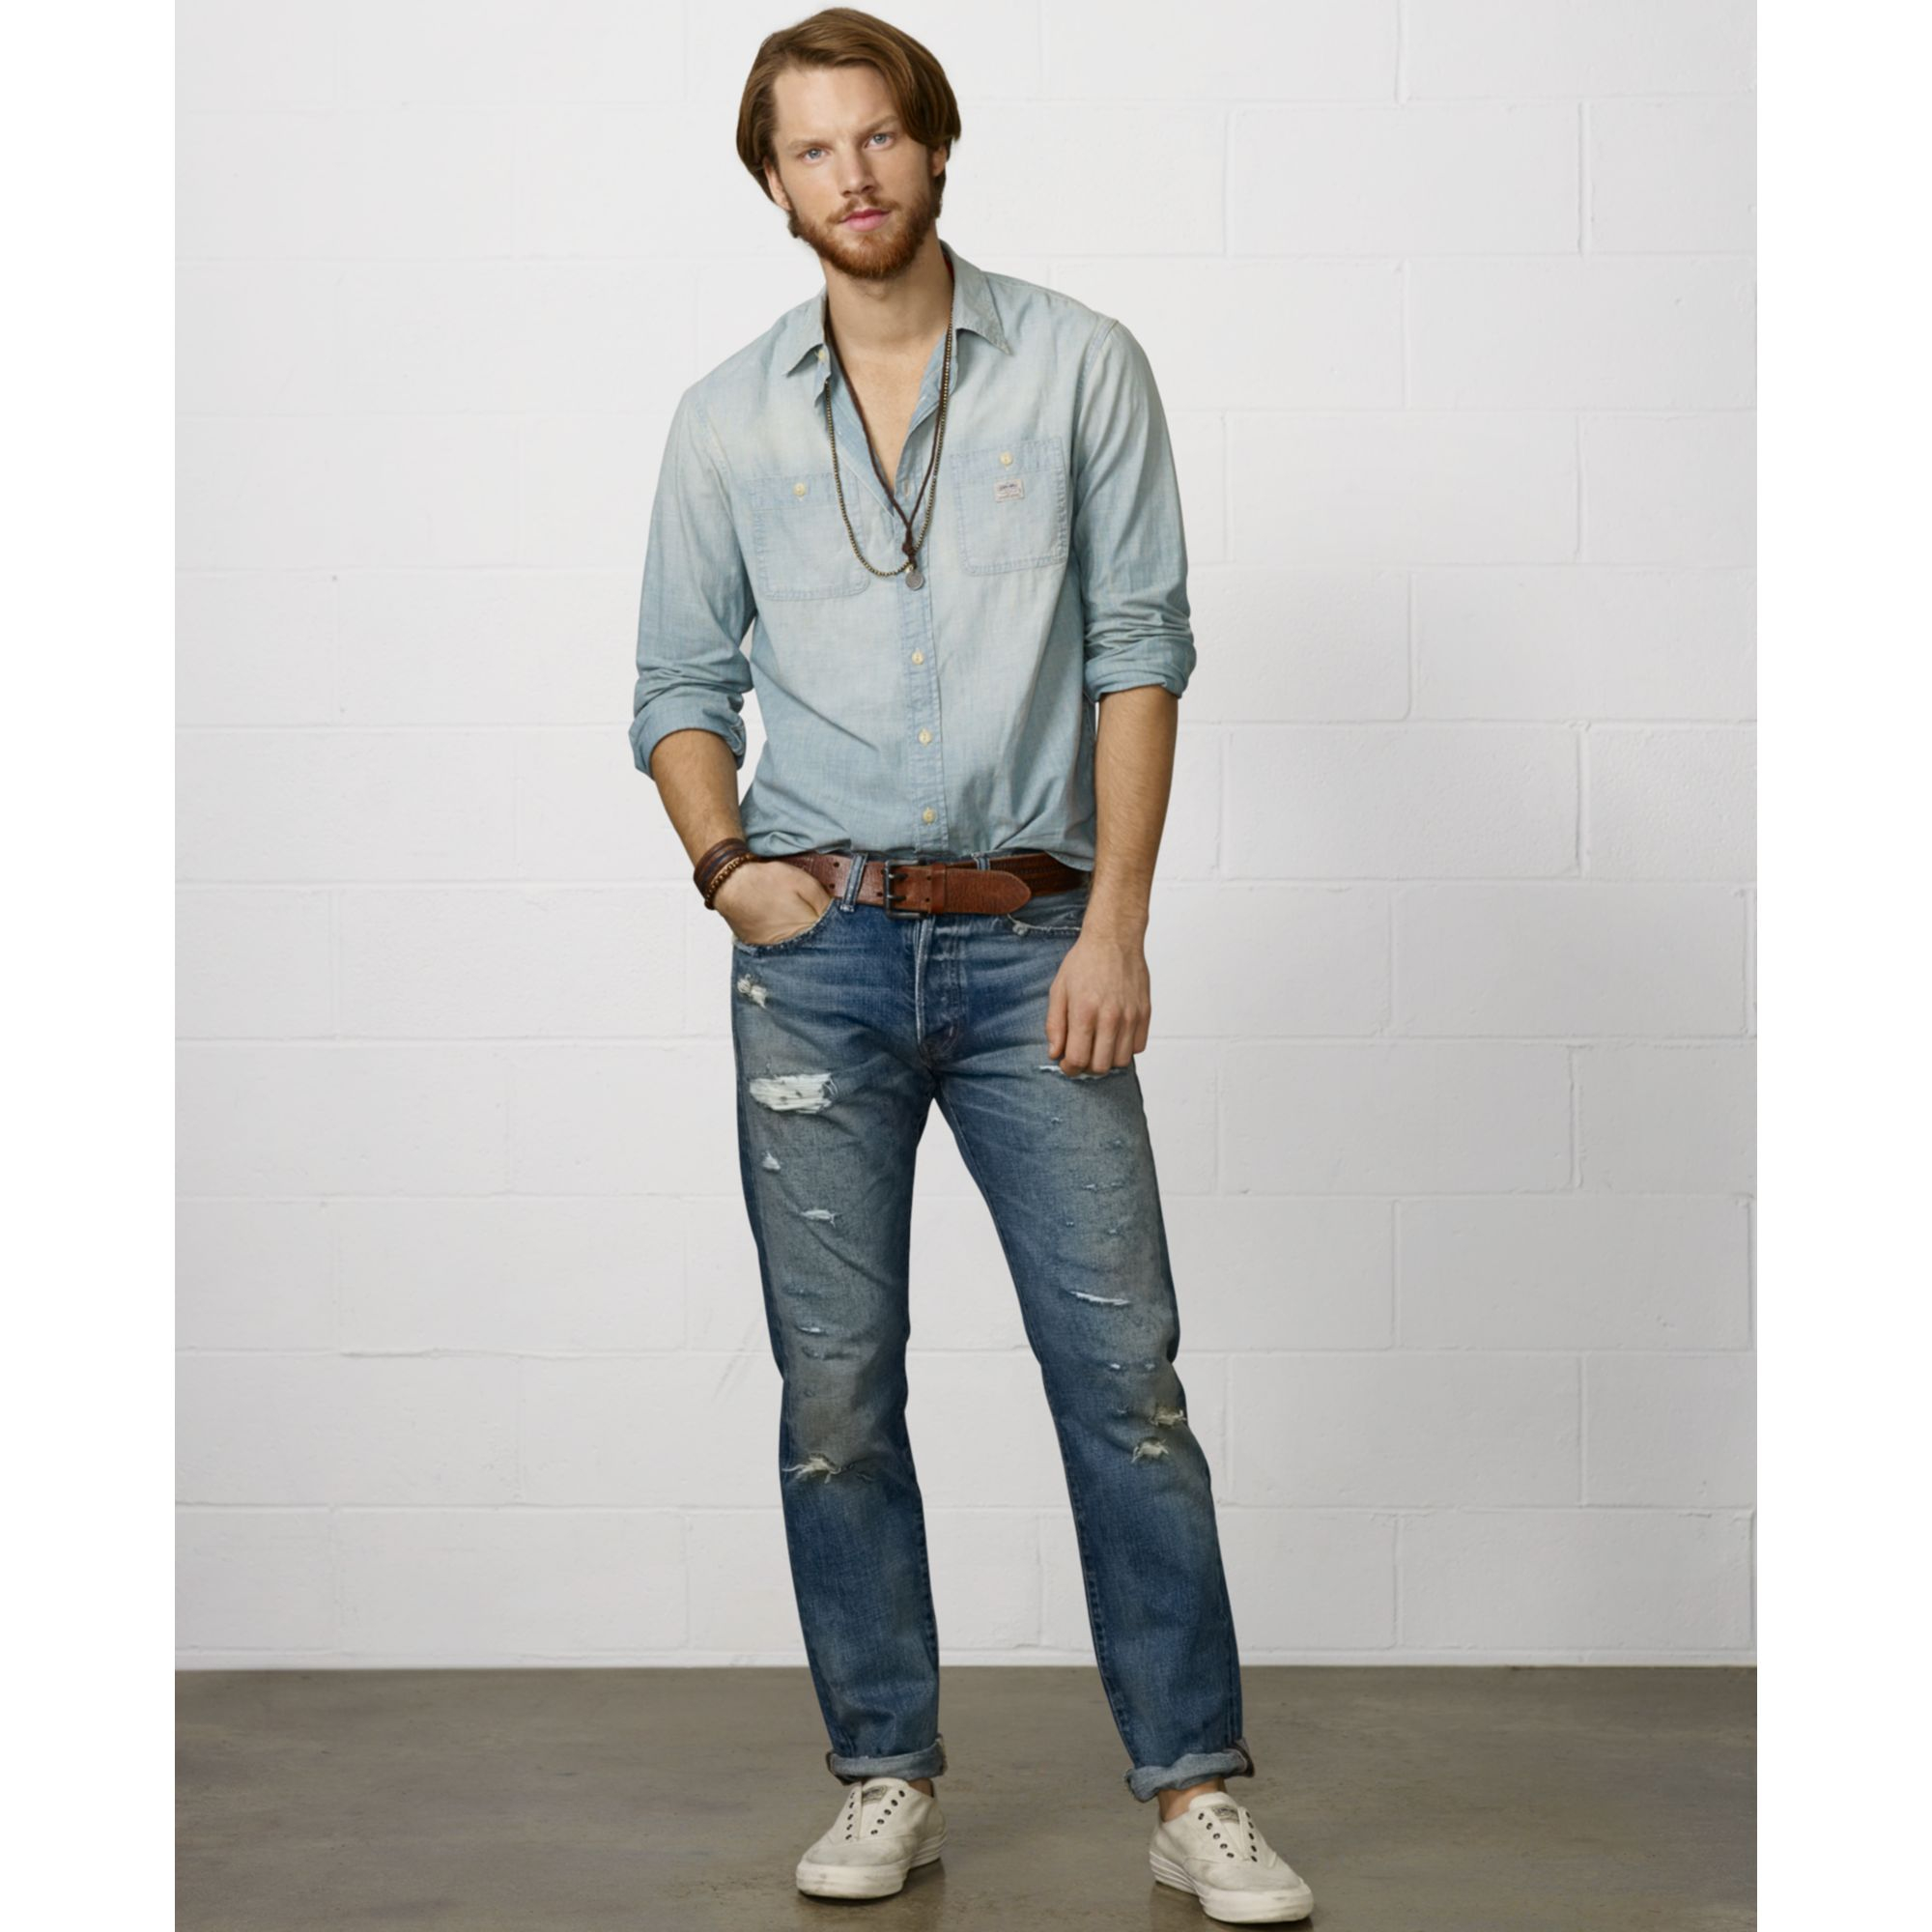 143625ae Denim & Supply Ralph Lauren Flag and Eagle Chambray Shirt in Blue ...